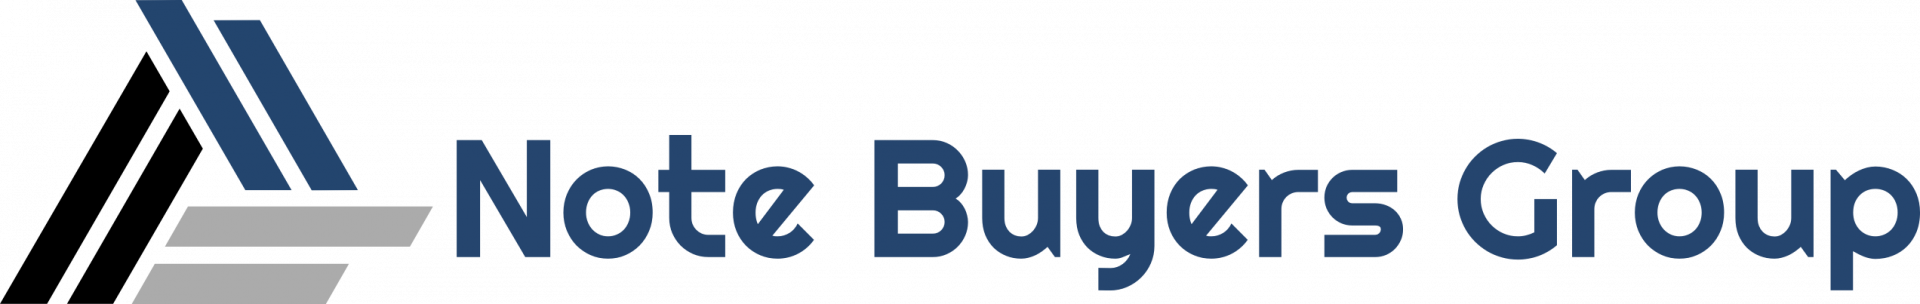 Note Buyers Group logo